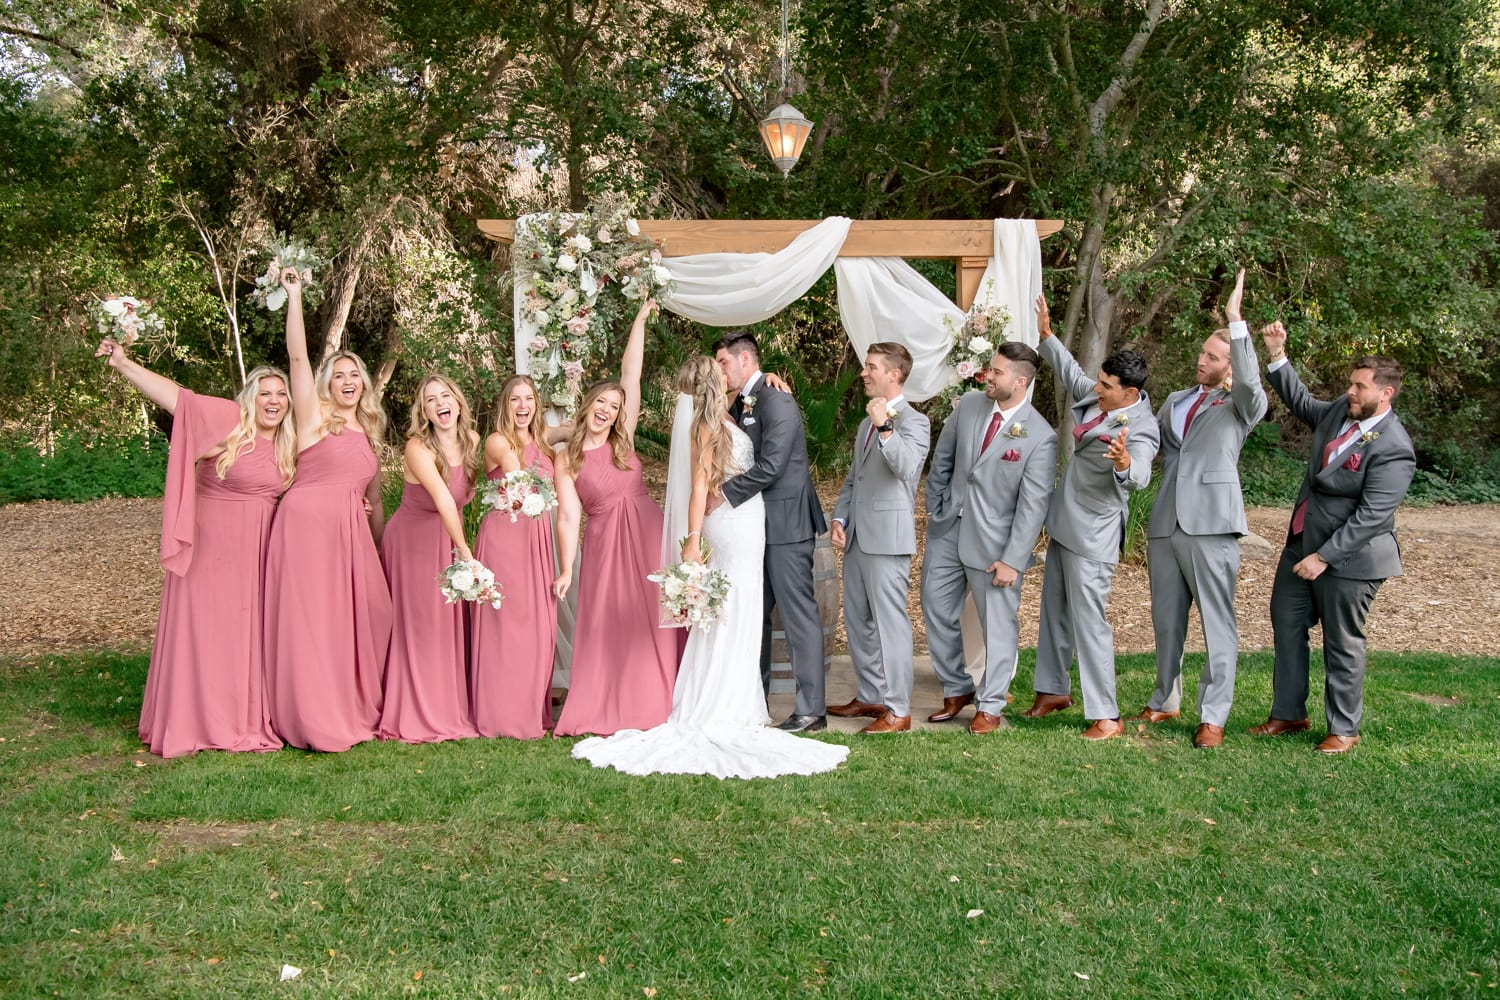 Bridal party photos at The Stone House wedding venue in Temecula, CA